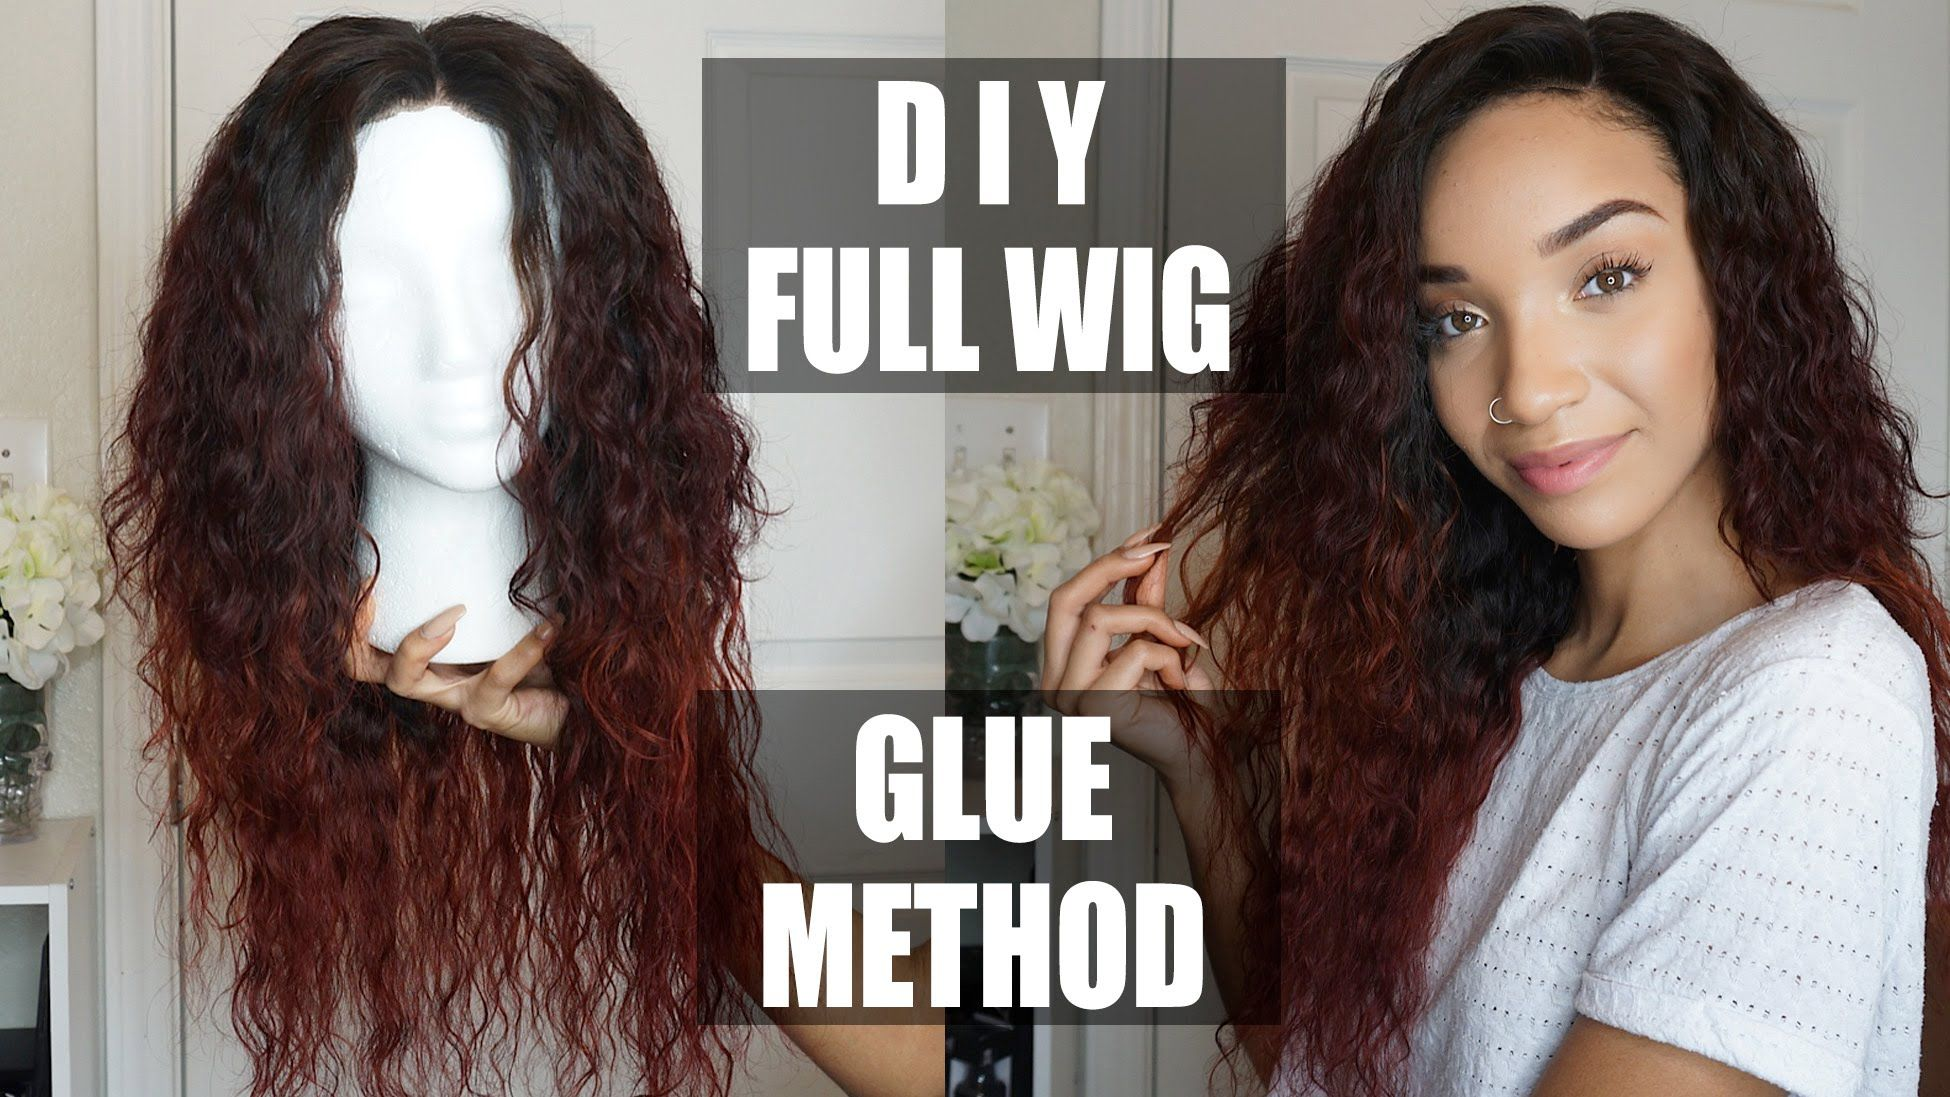 Full Hair Weave Styles: Easy DIY Full Wig With Lace Closure (Glue Method